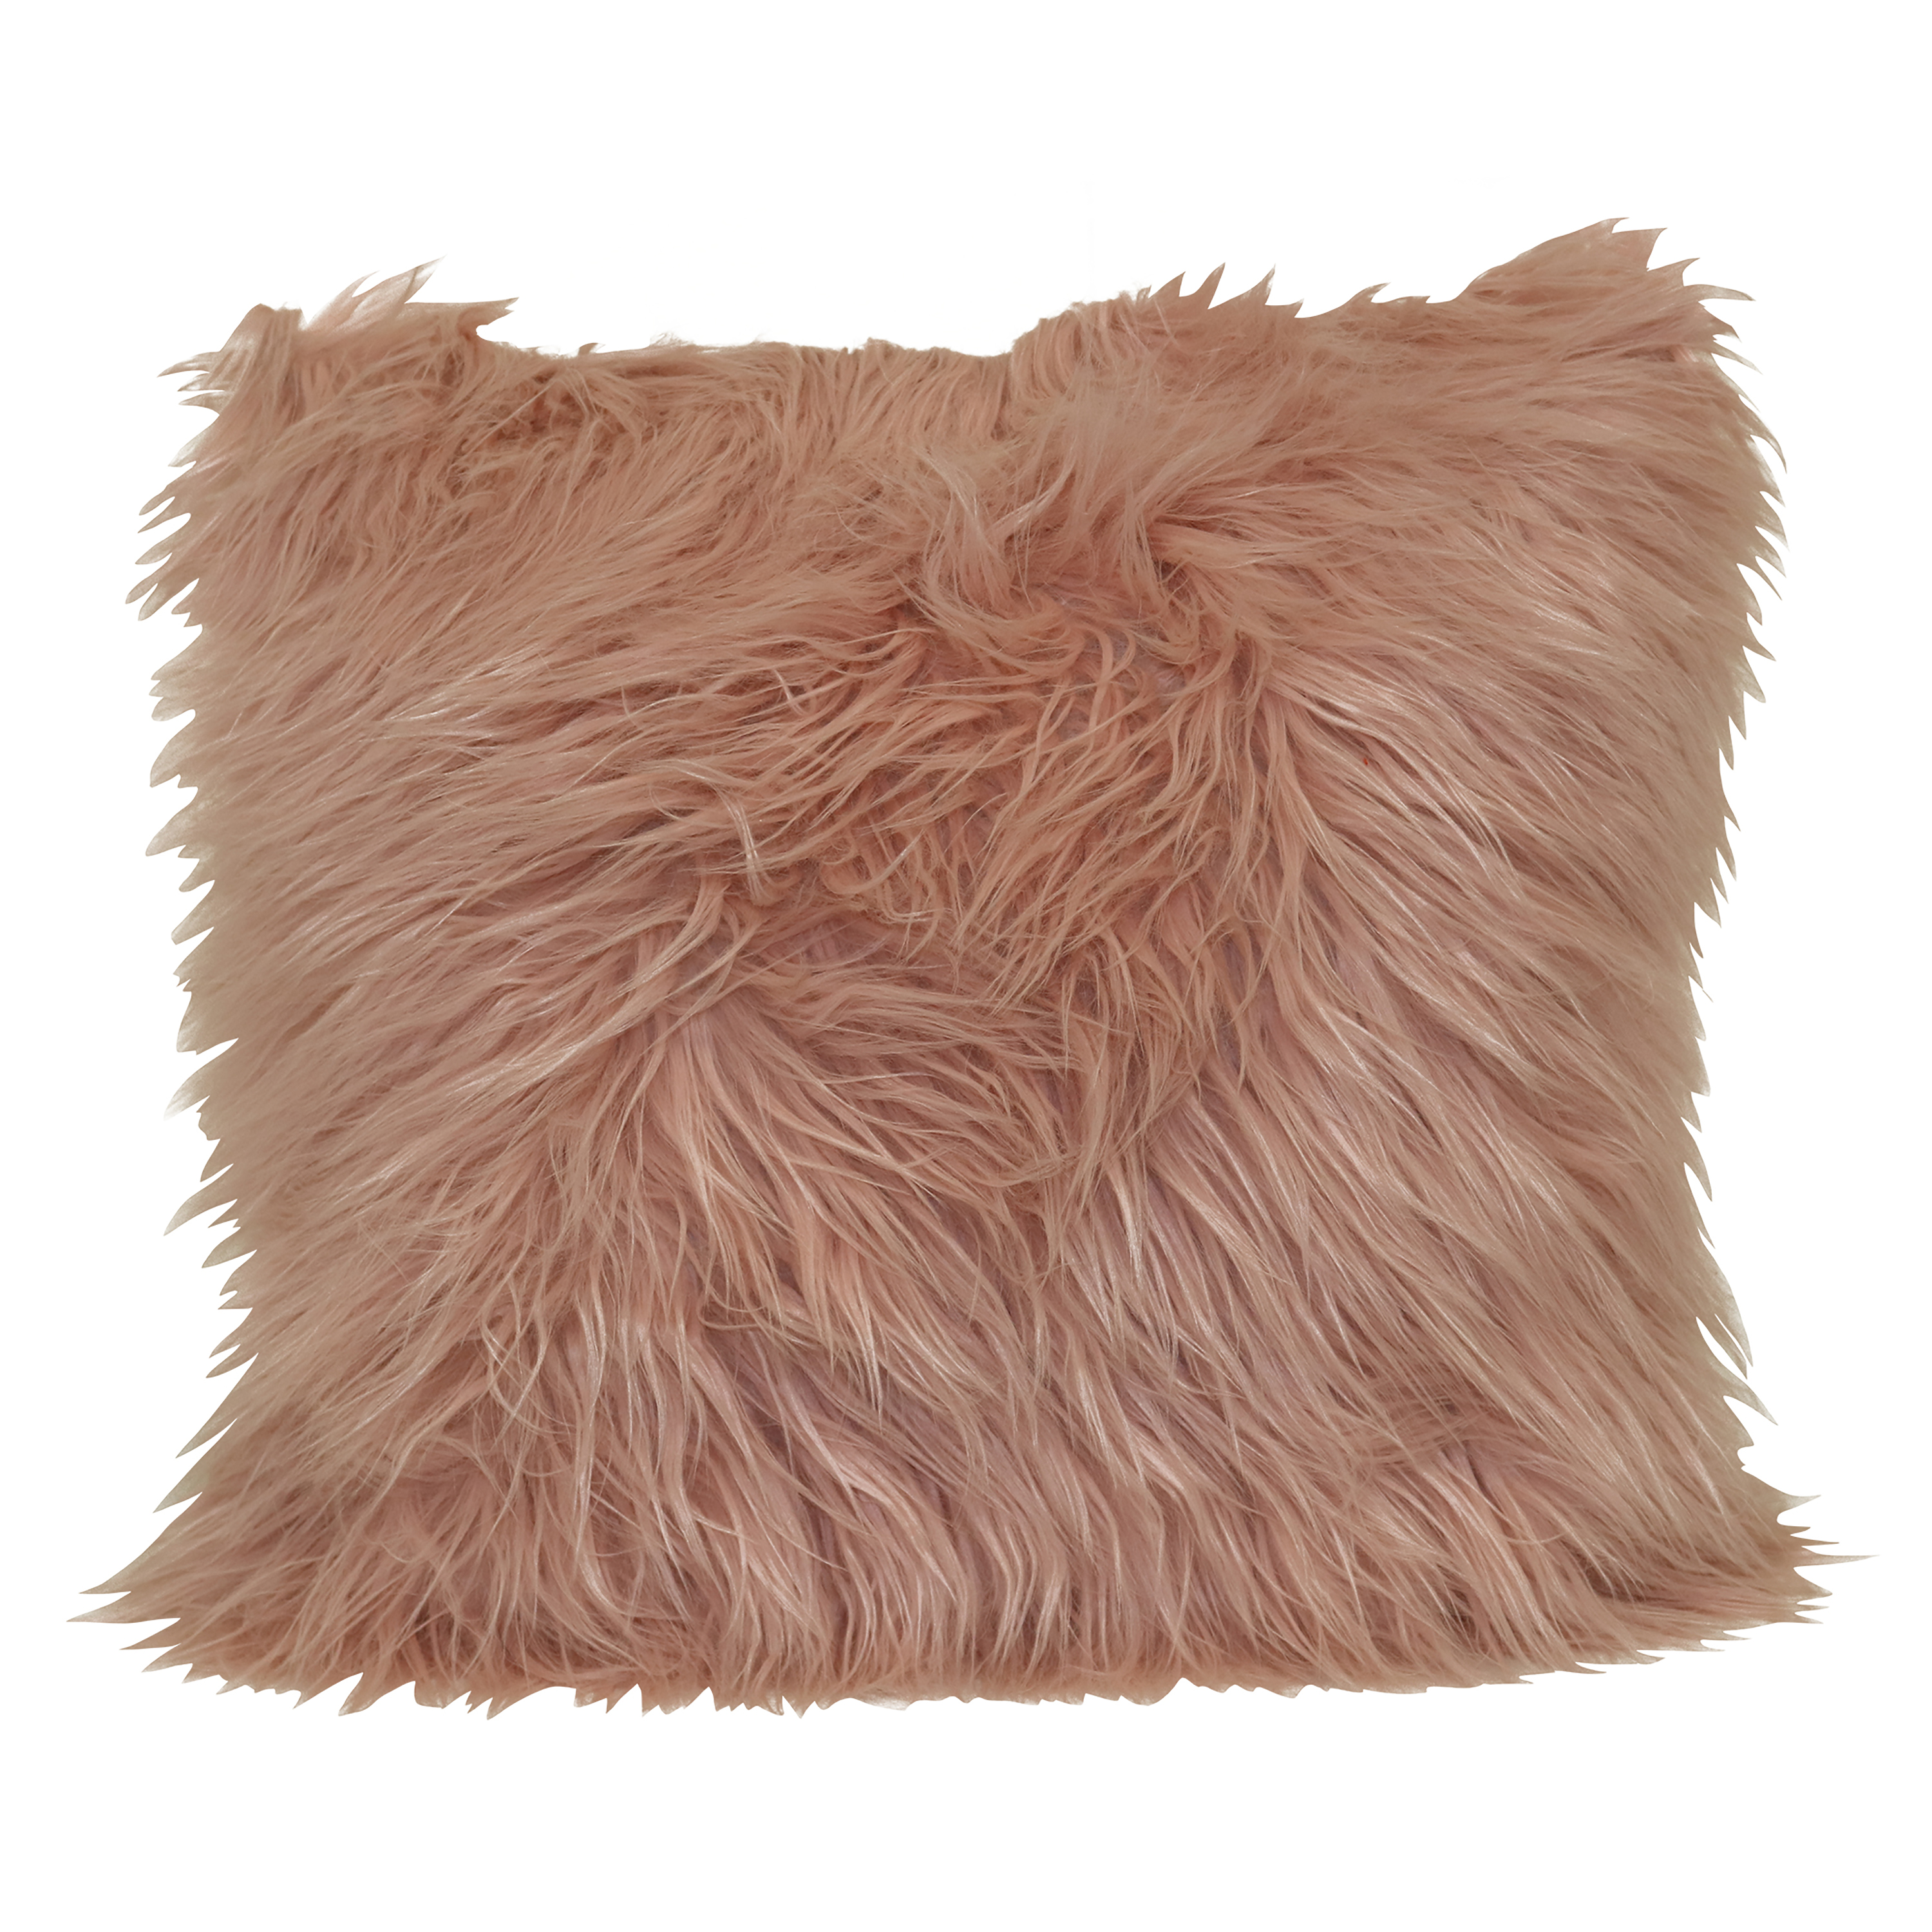 Details About Angora Faux Fur Decorative Pillow 18 X 18 Pearl Blush Bedroom Living Room